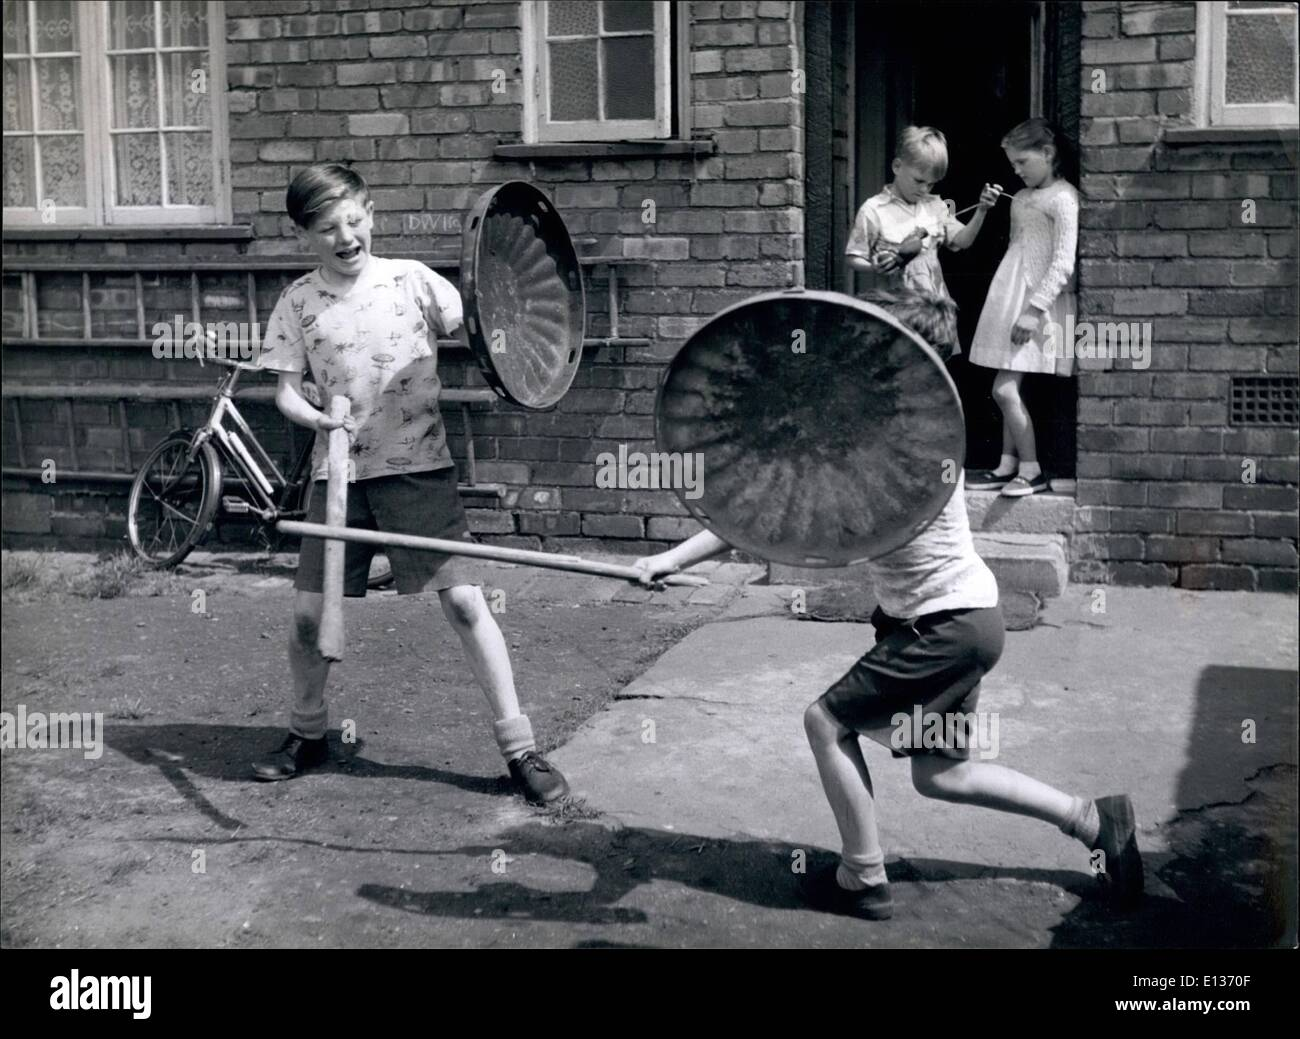 Feb. 28, 2012 - Dustbin lids become shields and sticks become sword as John plays soldiers with his friend Trevor. - Stock Image